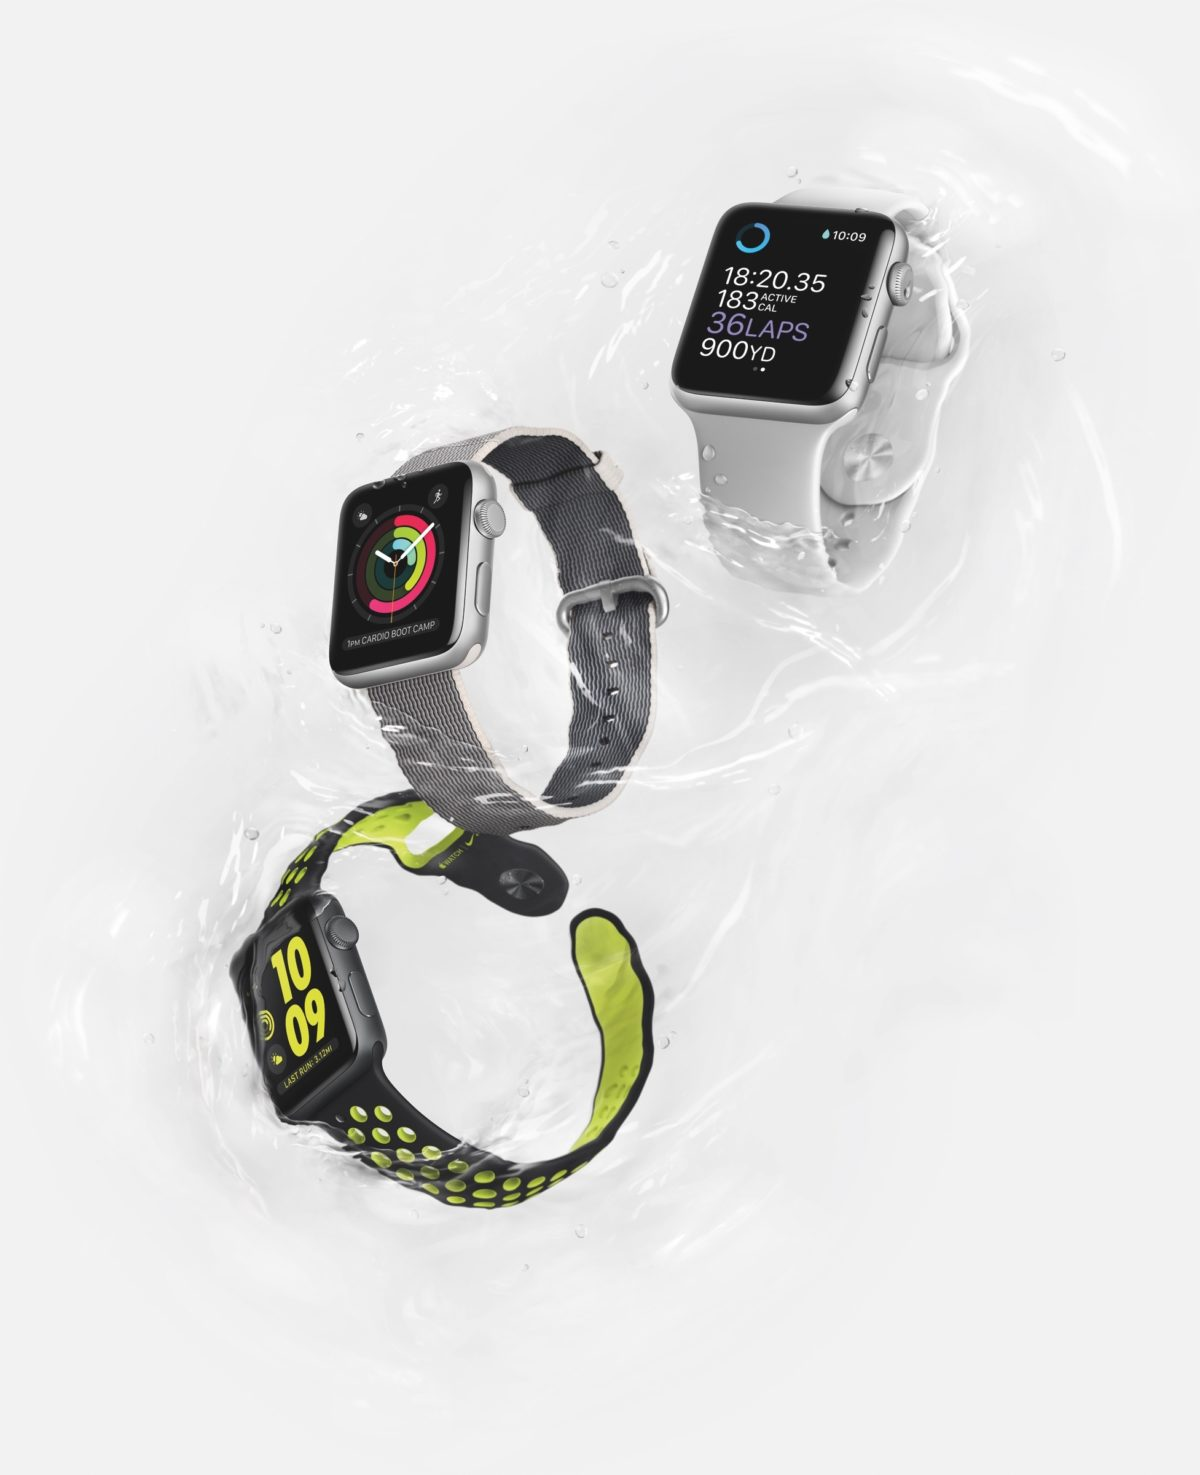 Aetna to offer Apple Watch free to employees, discounted to customers and launch new health-oriented apps